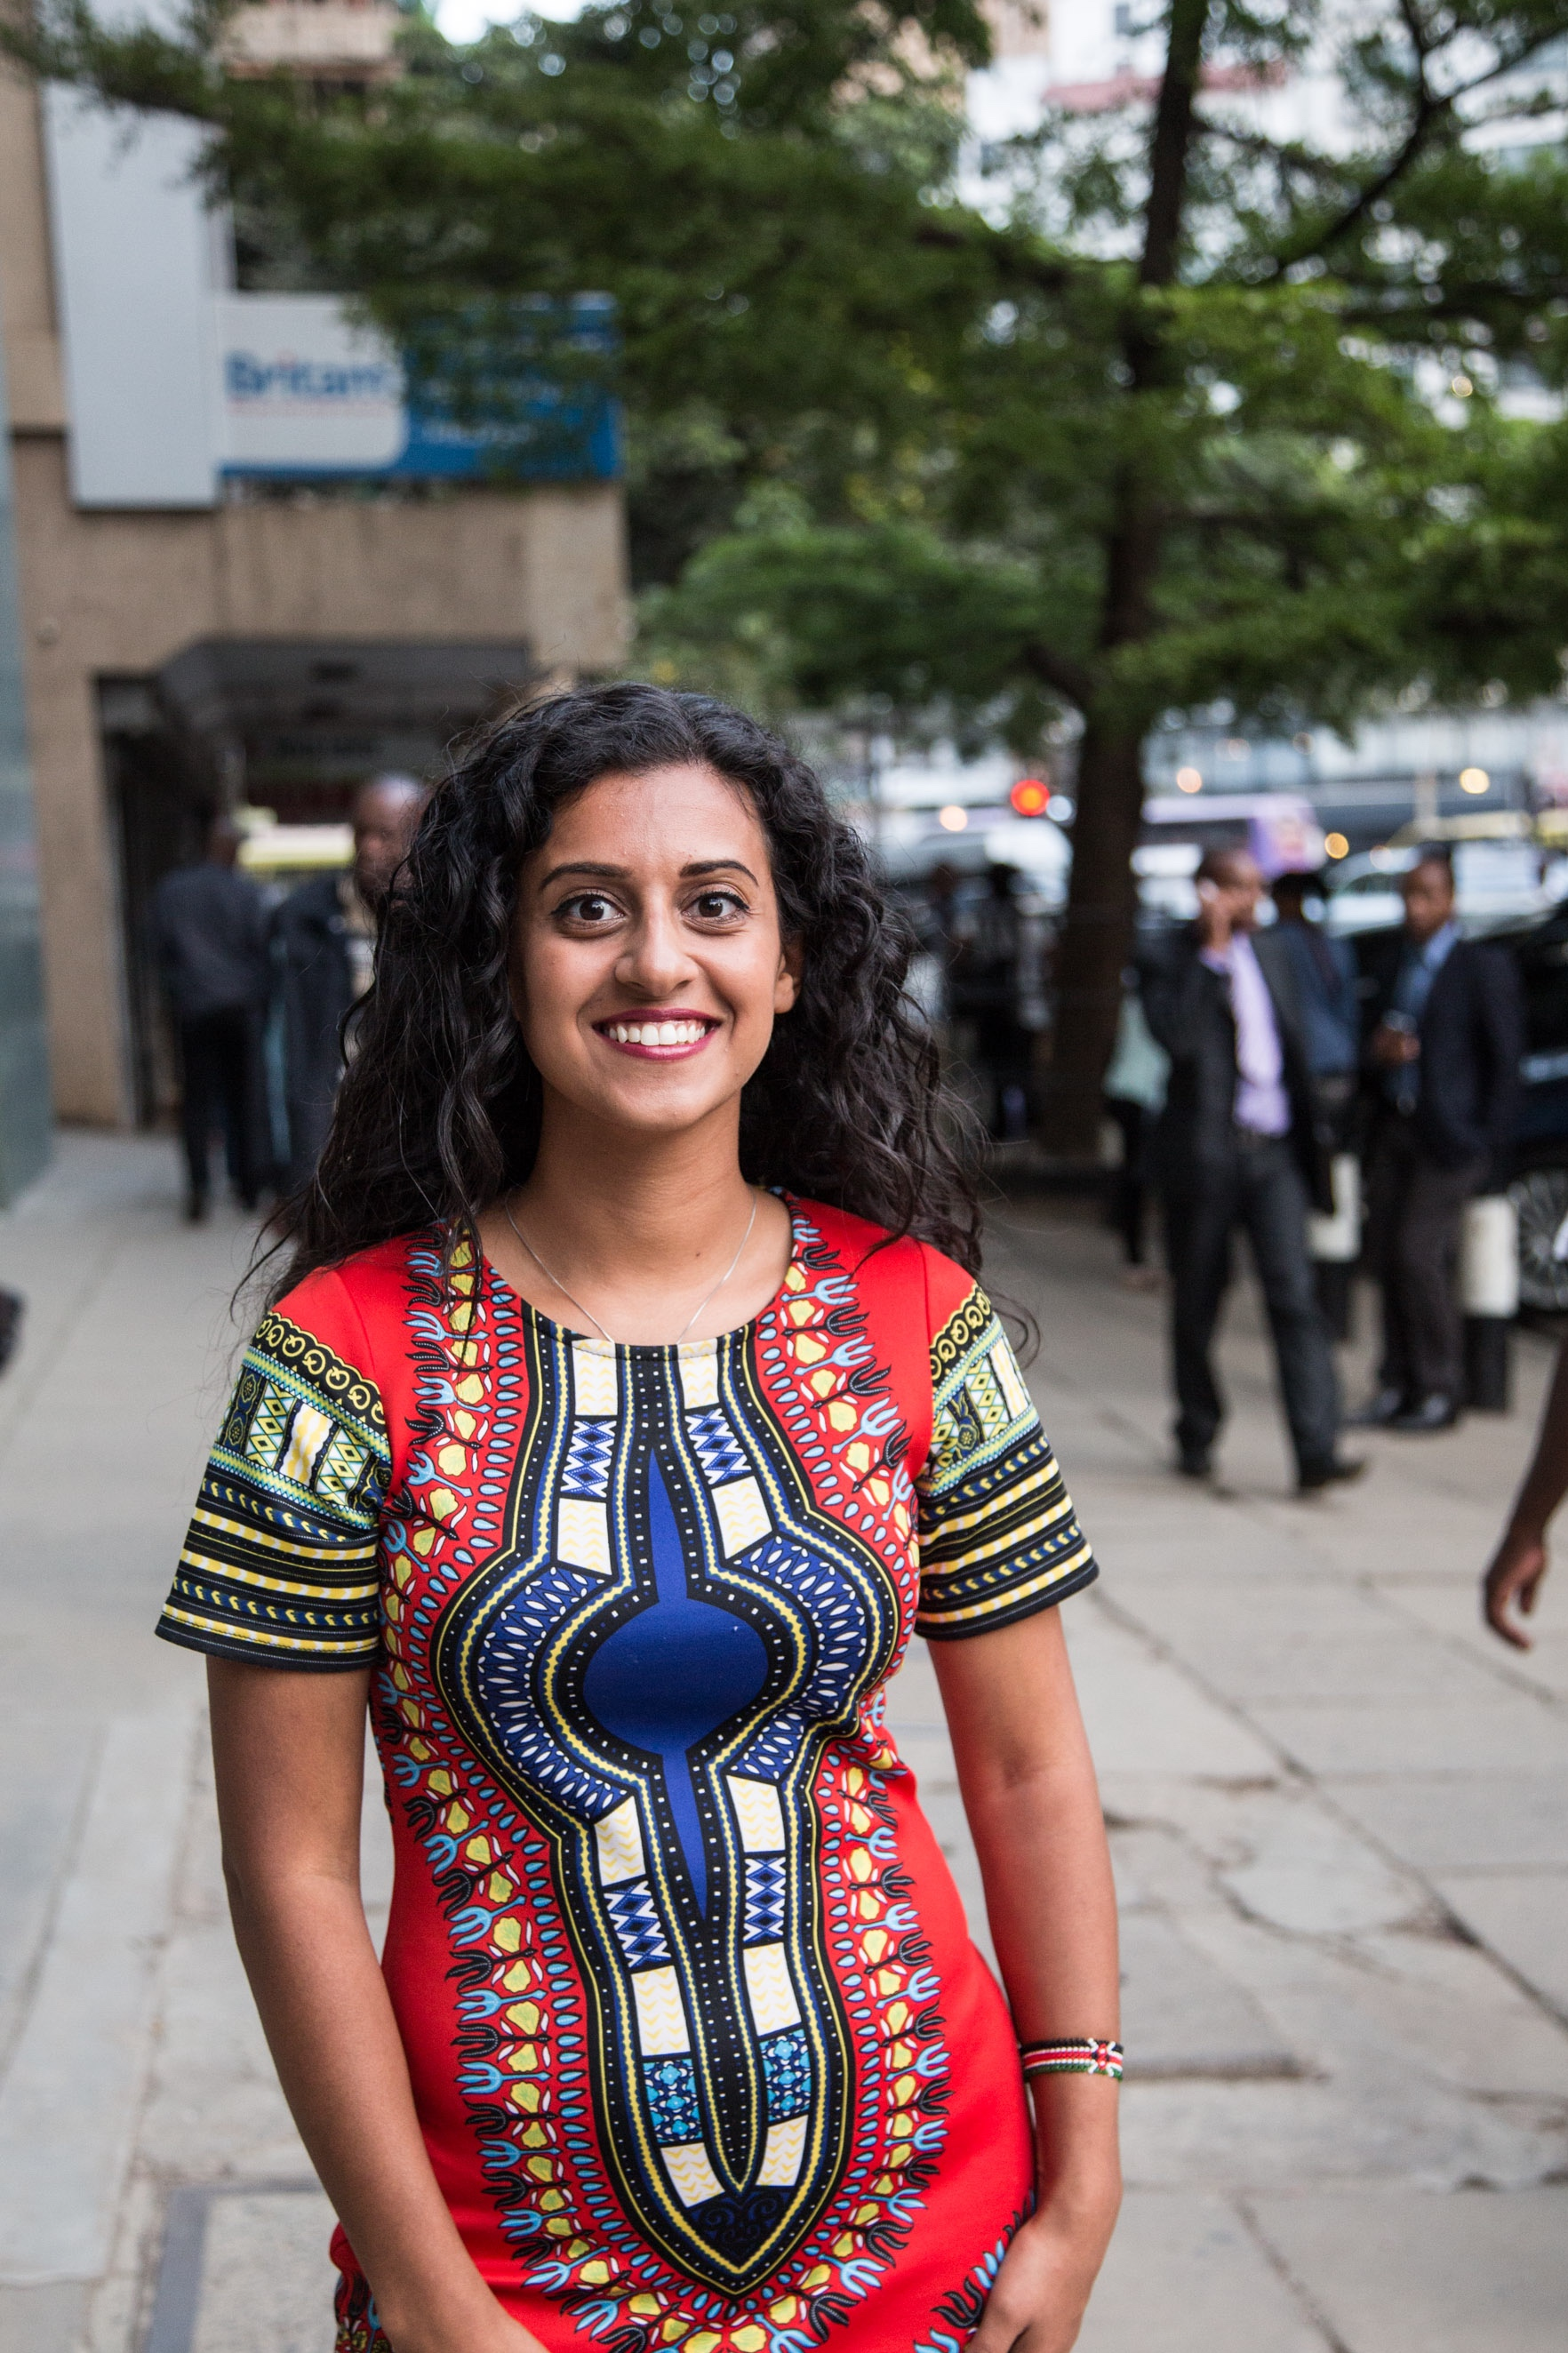 JACKY HABIB   Jacky is a freelance journalist, media trainer, and entrepreneur based in Nairobi, Kenya. She reports about social justice, humanitarian issues, and women's rights for media outlets including  The CS Monitor, The National Post, and The East African.  She started New Lens Travel because she believes in the transformative power of stories.